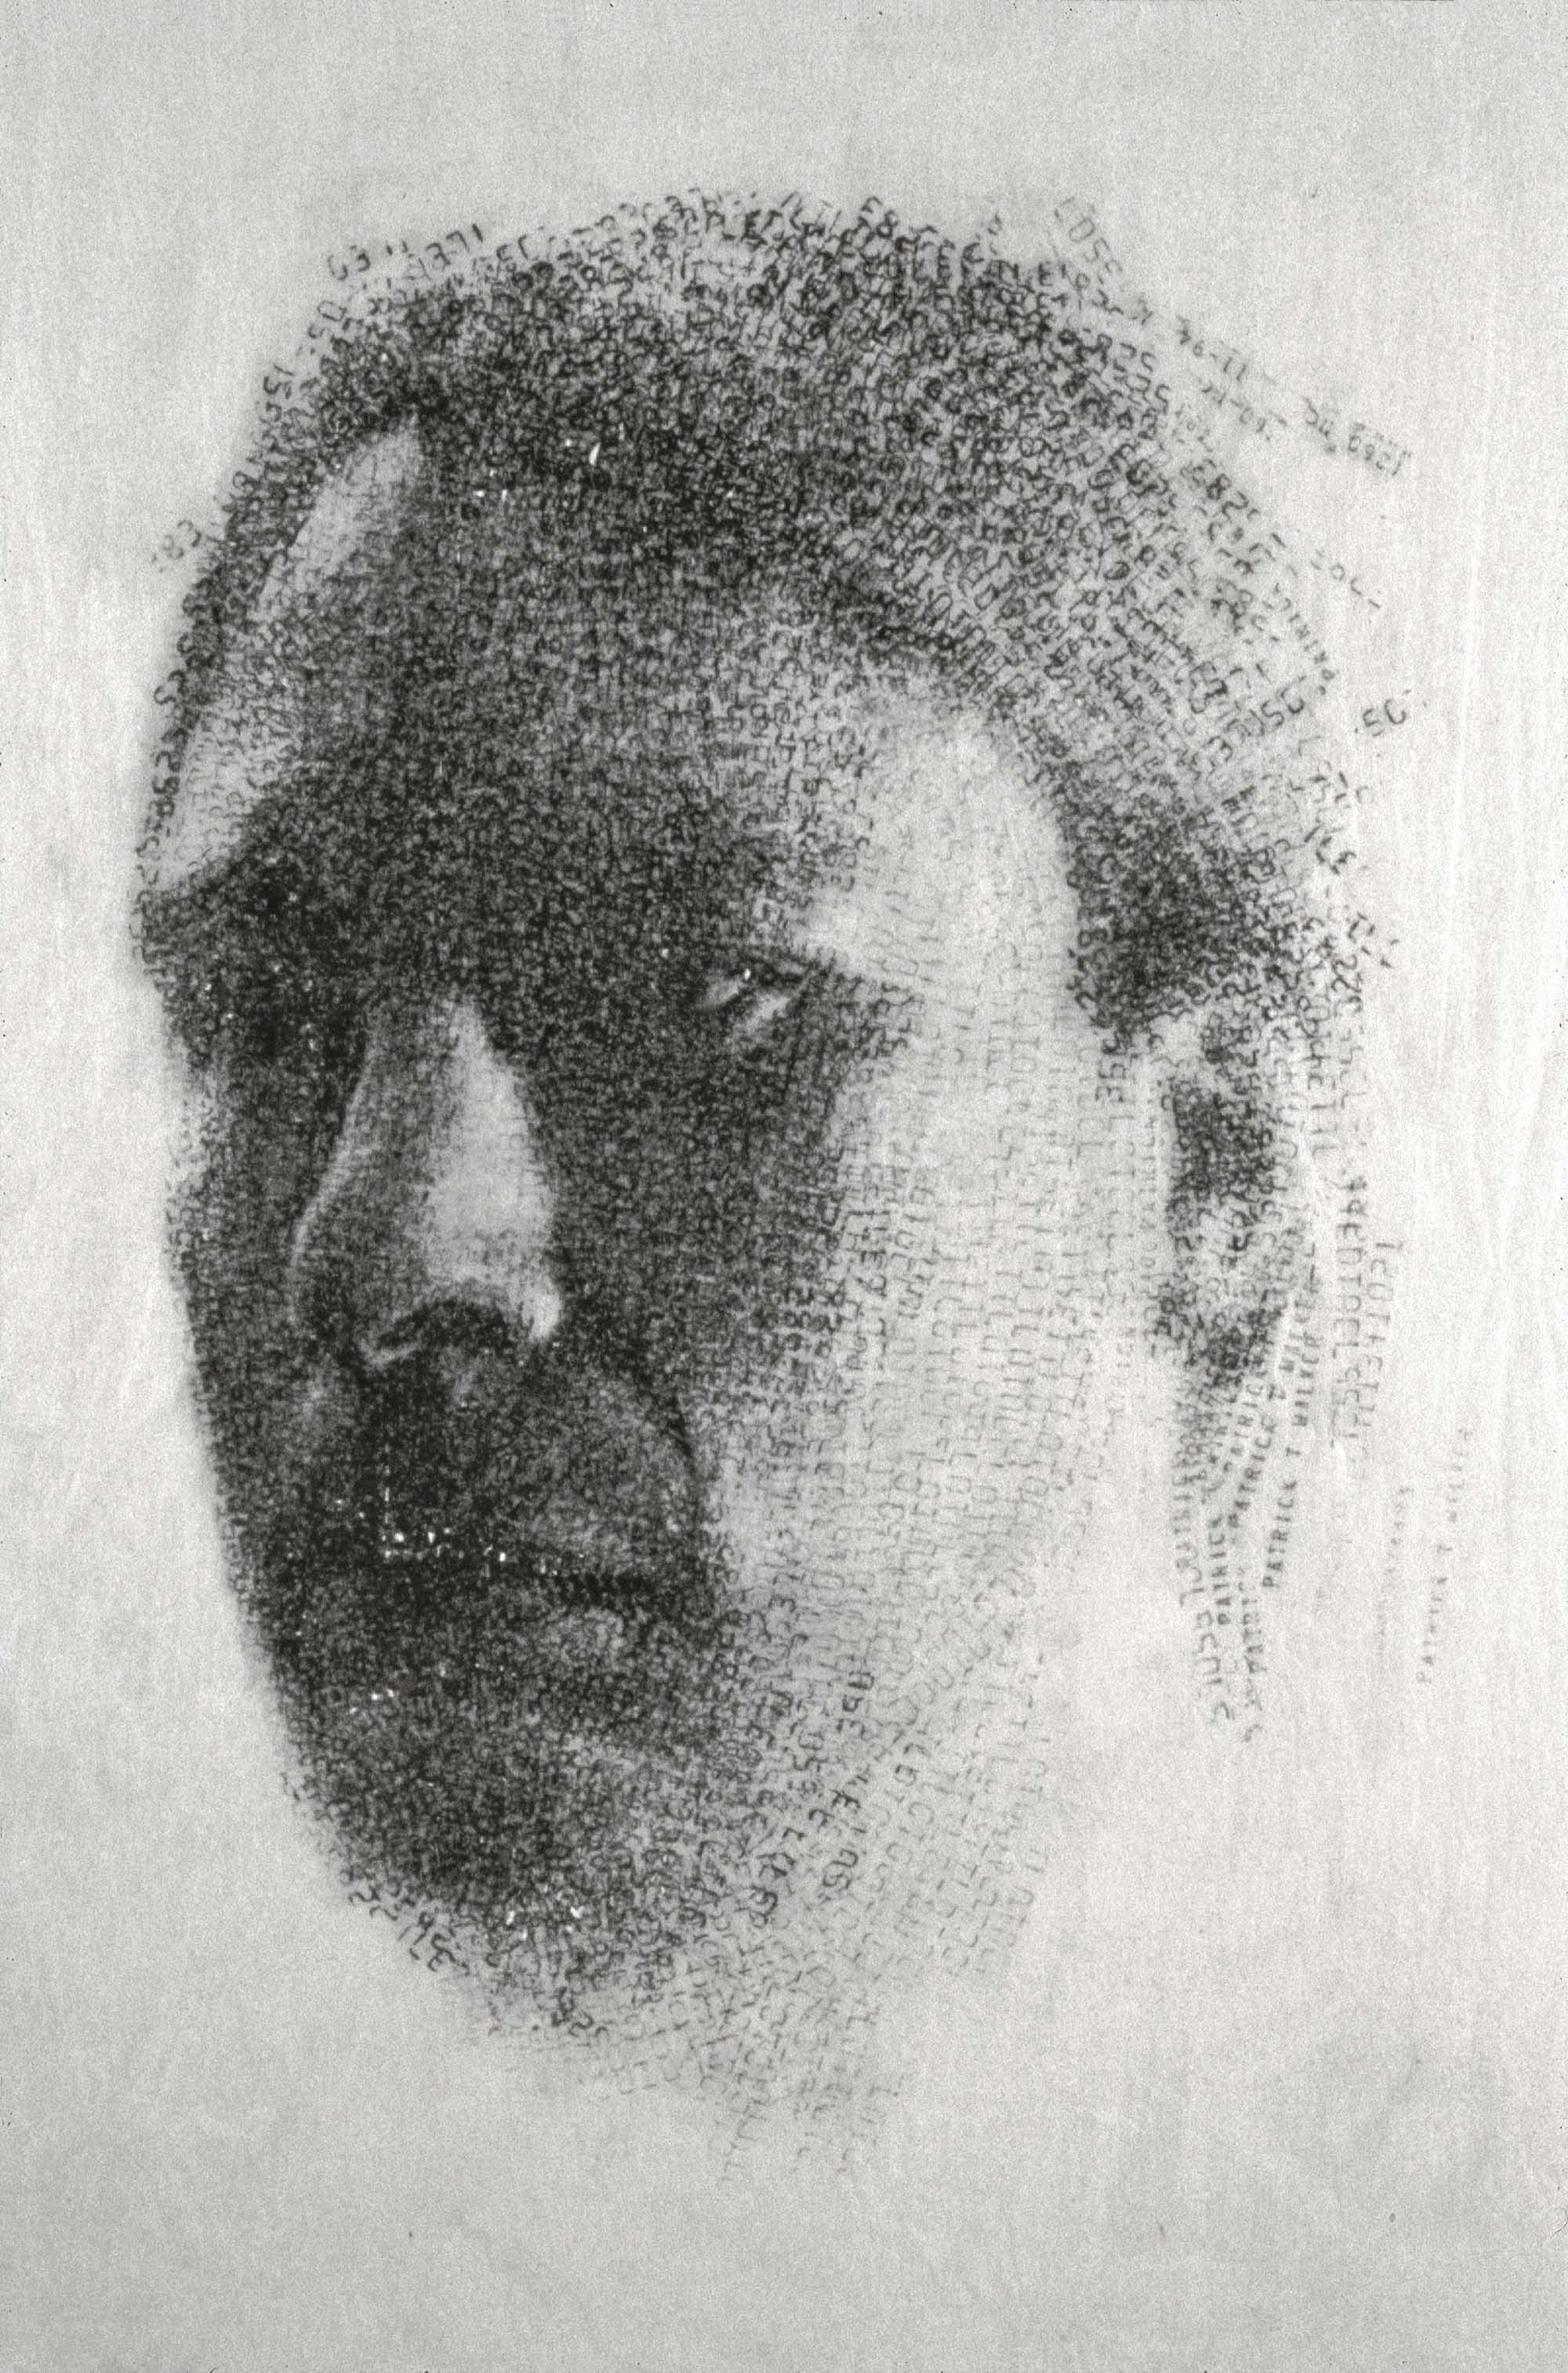 PAT   1993 H45, W35 cm Japanese paper, graphite Private collection